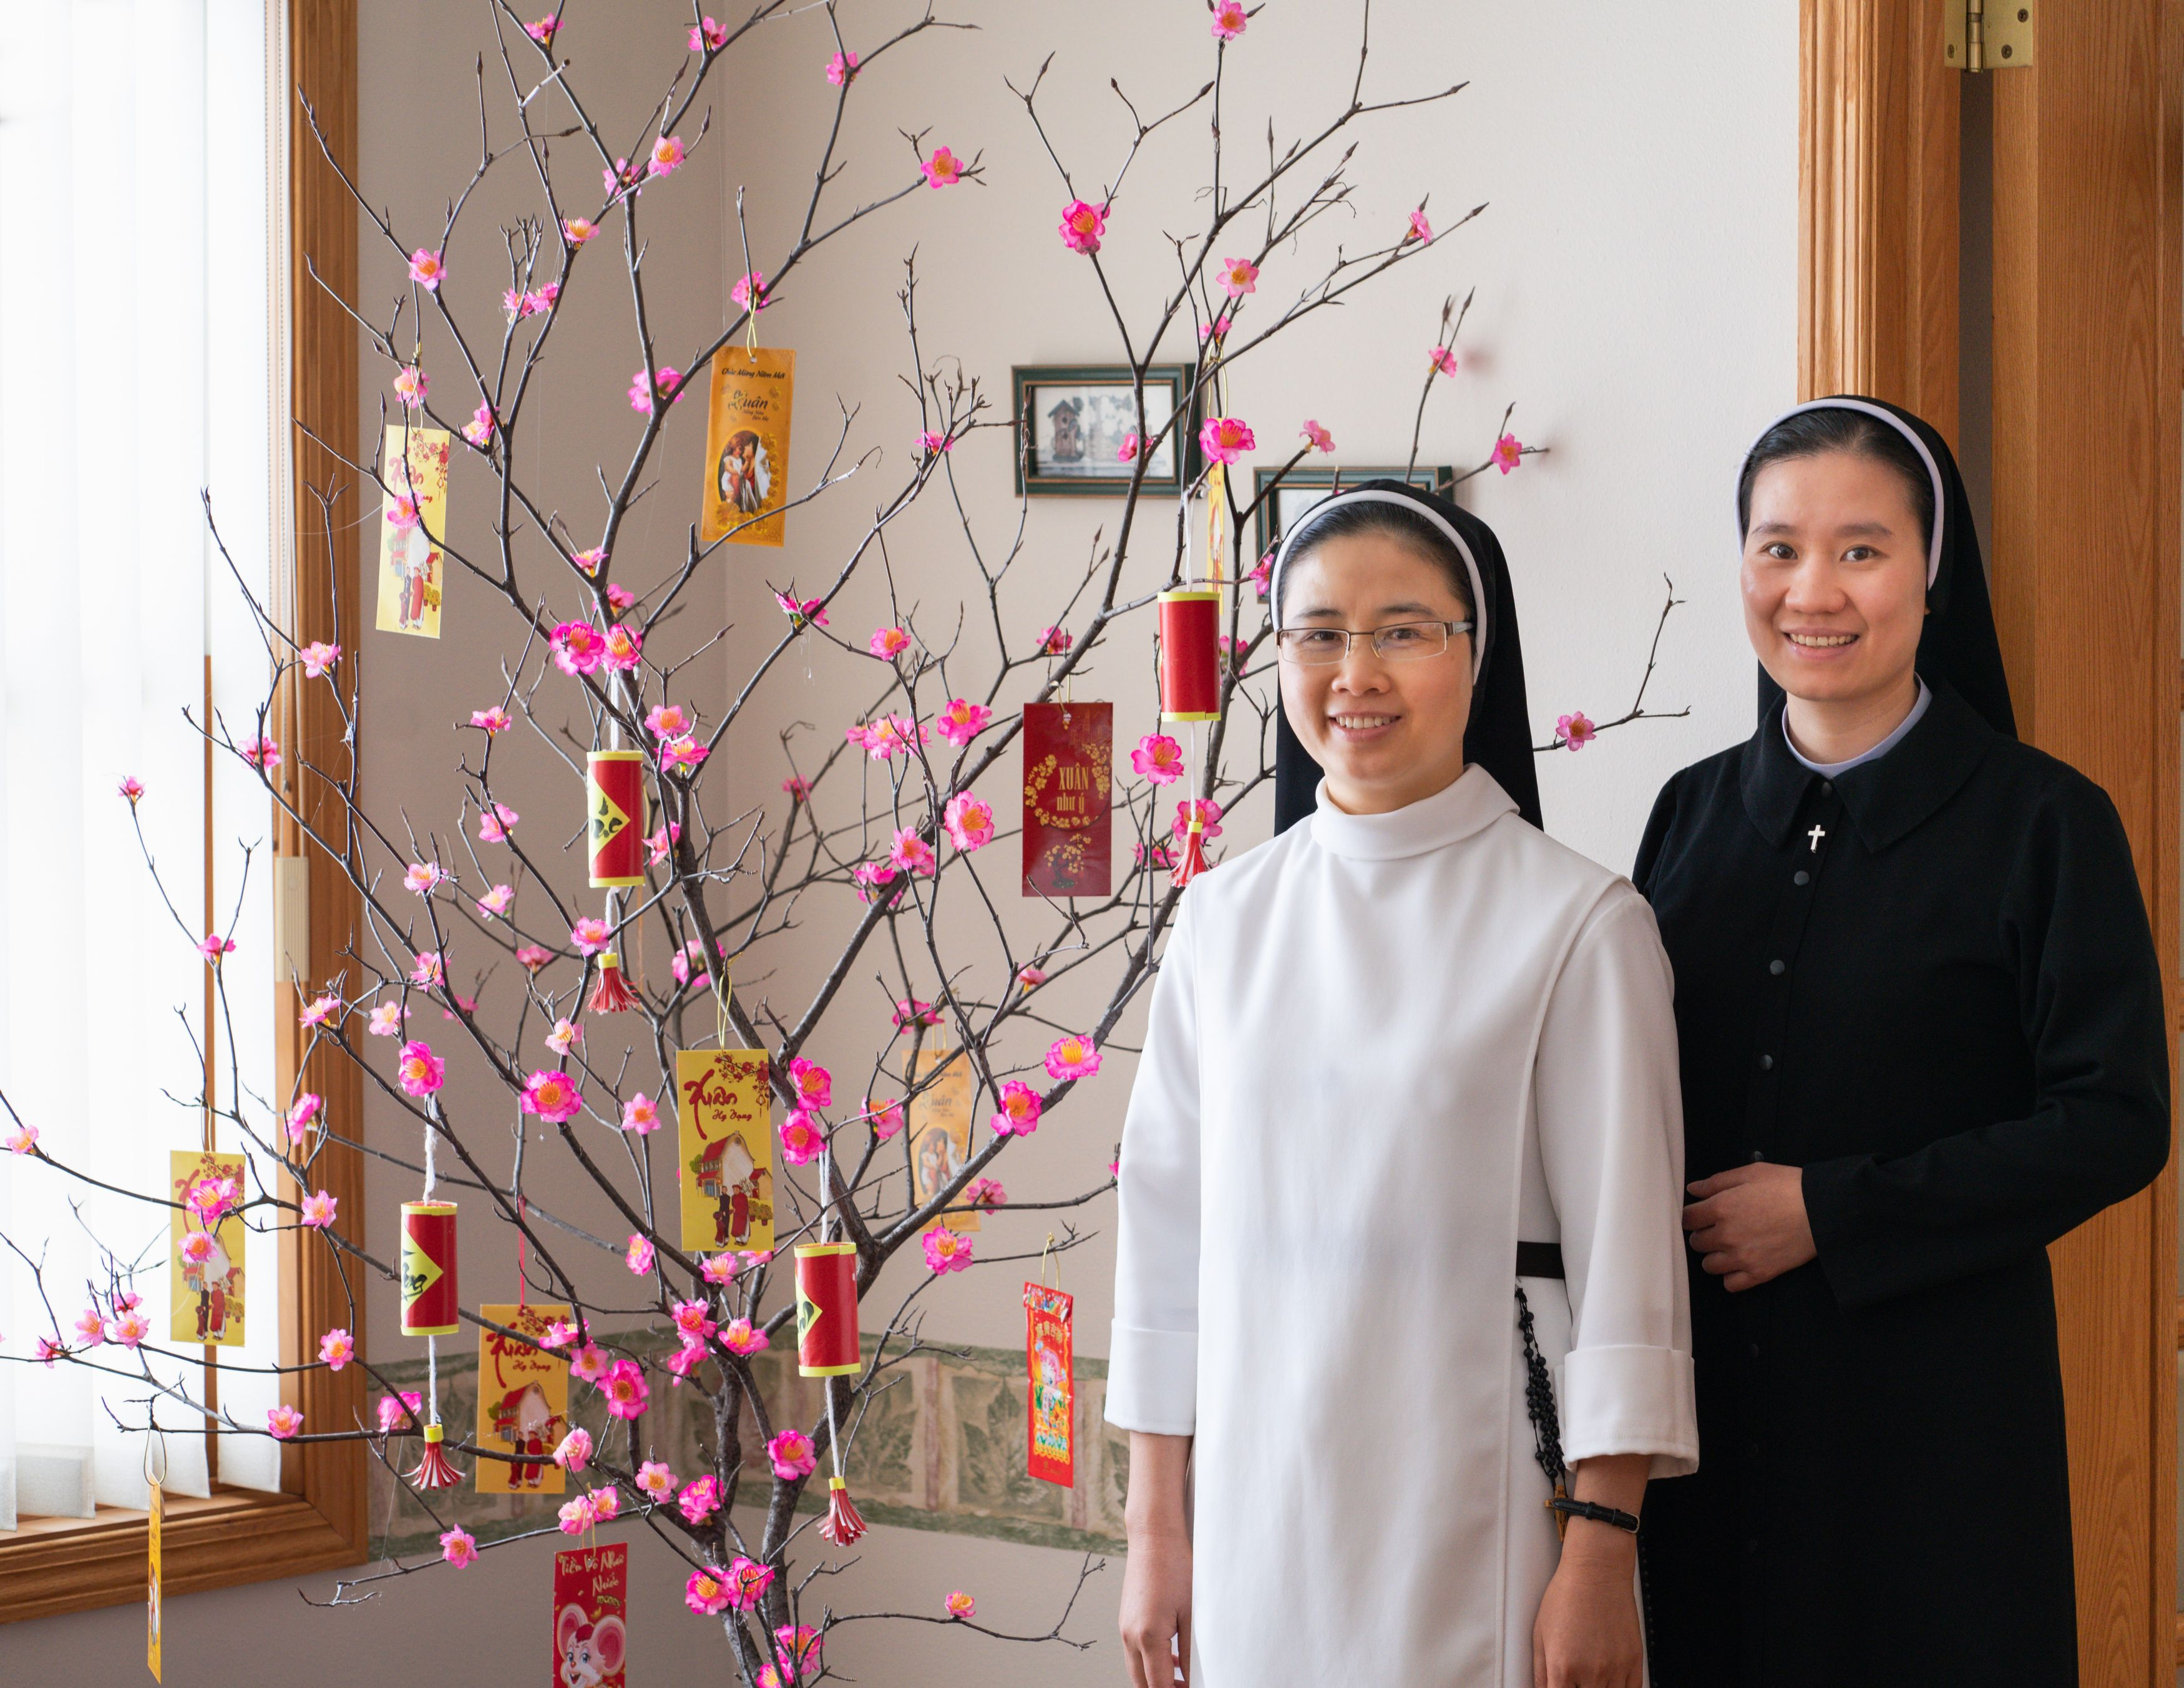 Sisters with Tree